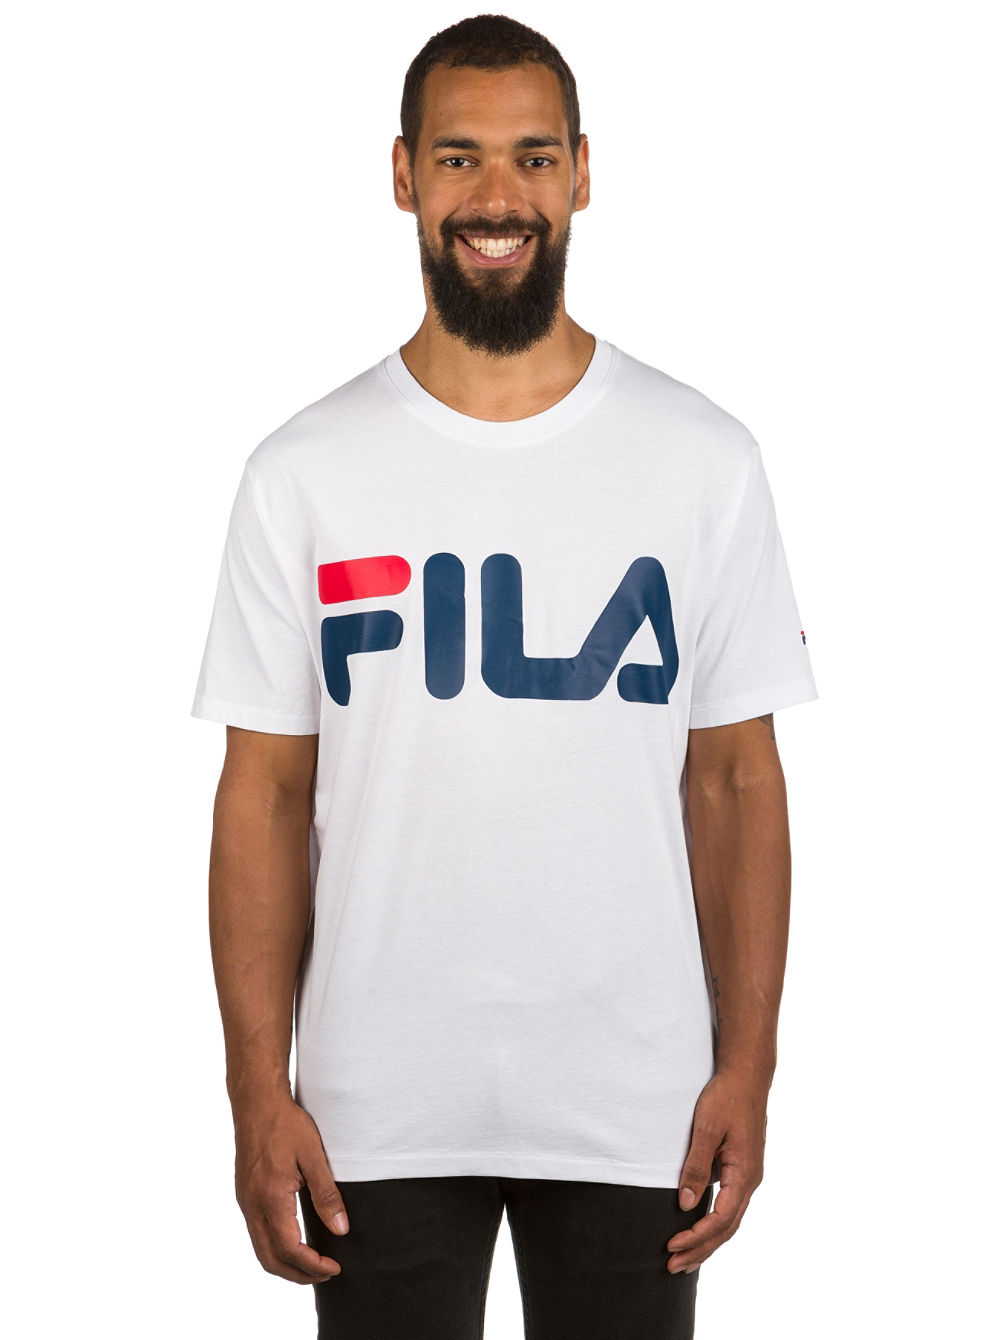 603f859d439a Buy Fila Basic T-Shirt online at Blue Tomato